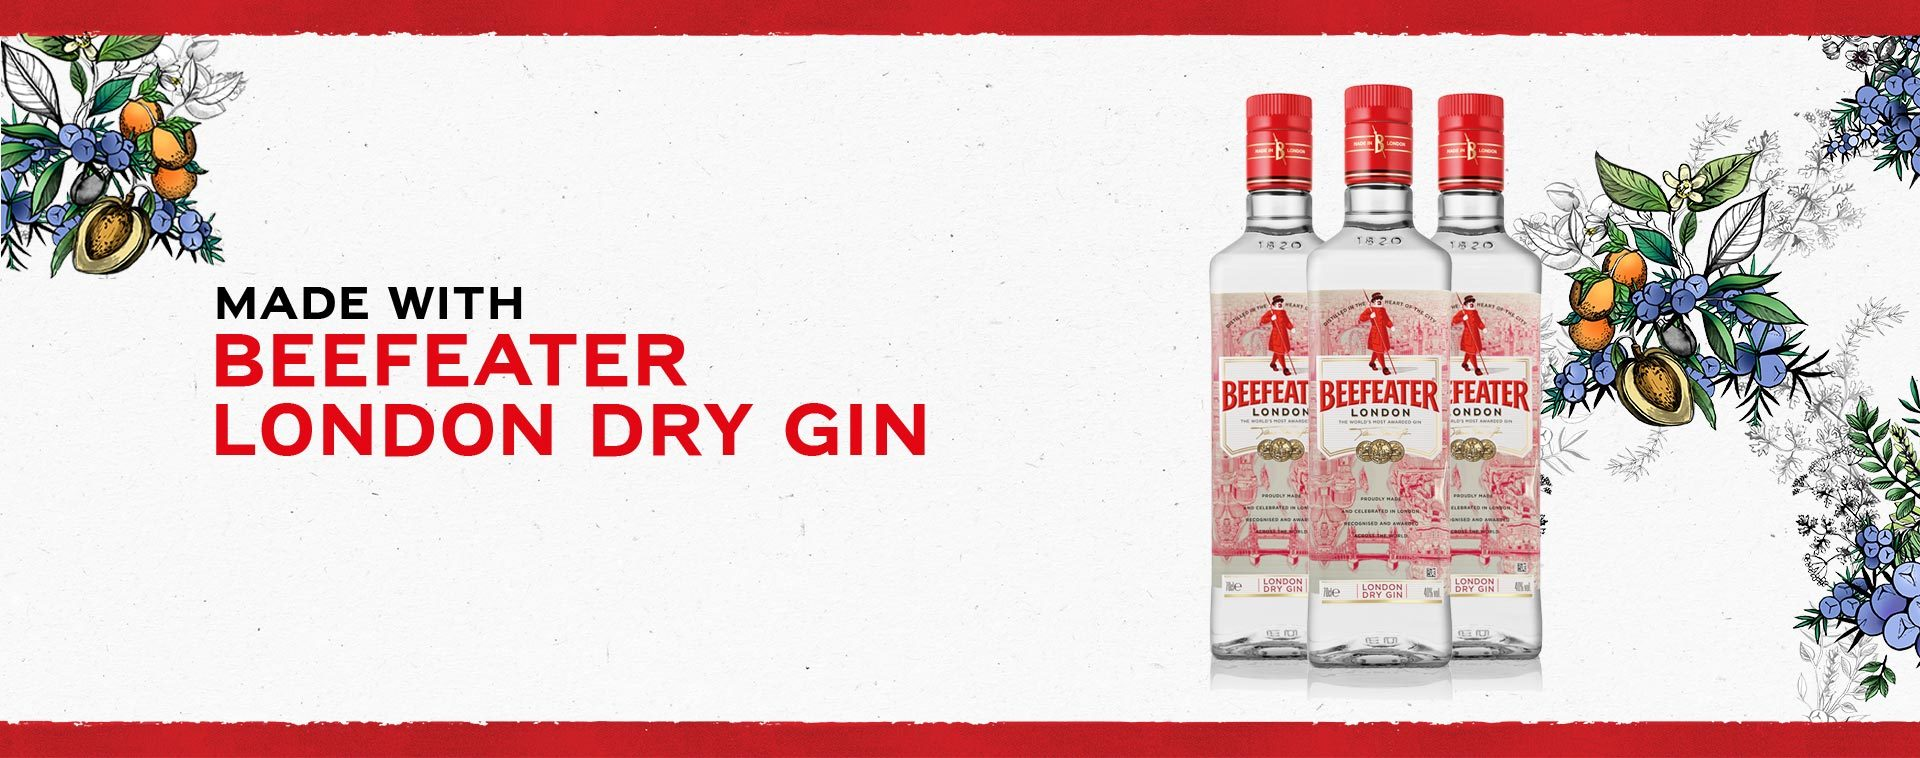 Made with BEEFEATER London Dry Gin